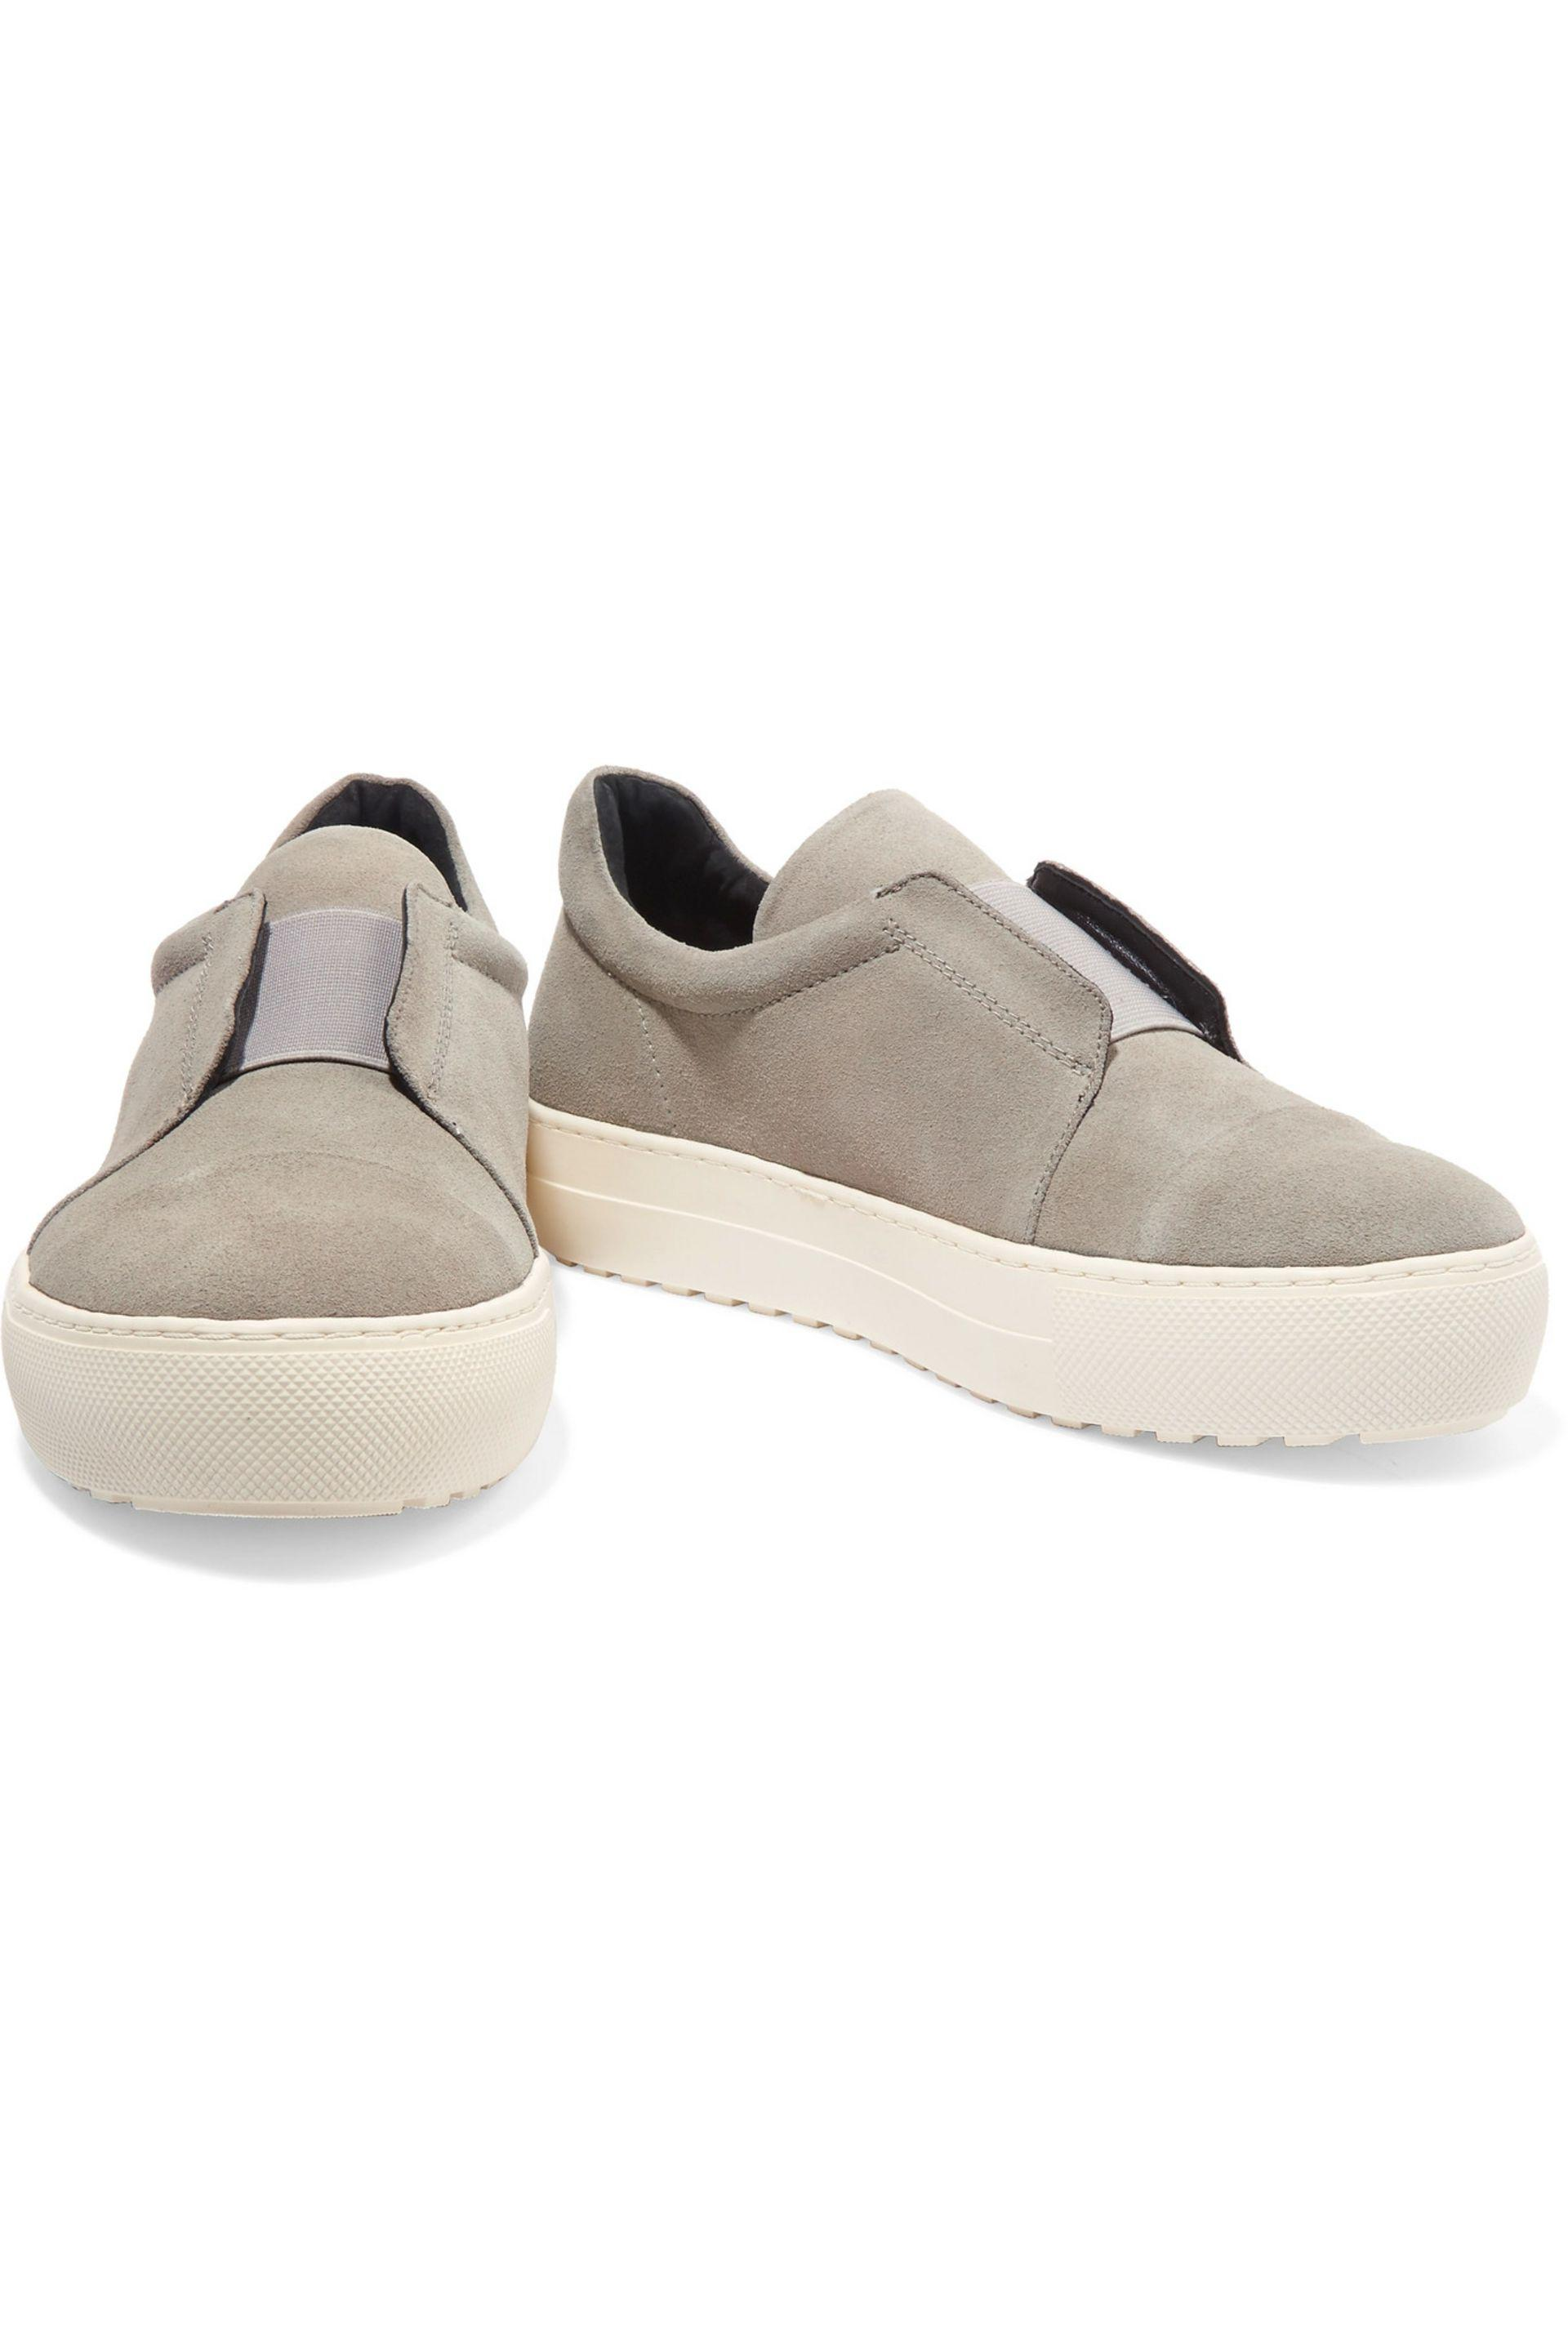 Largest Supplier For Sale By Malene Birger Woman Snake-effect Leather Slip-on Sneakers Light Gray Size 36 By Malene Birger Free Shipping Purchase Buy Cheap For Sale QQj4fa8eR